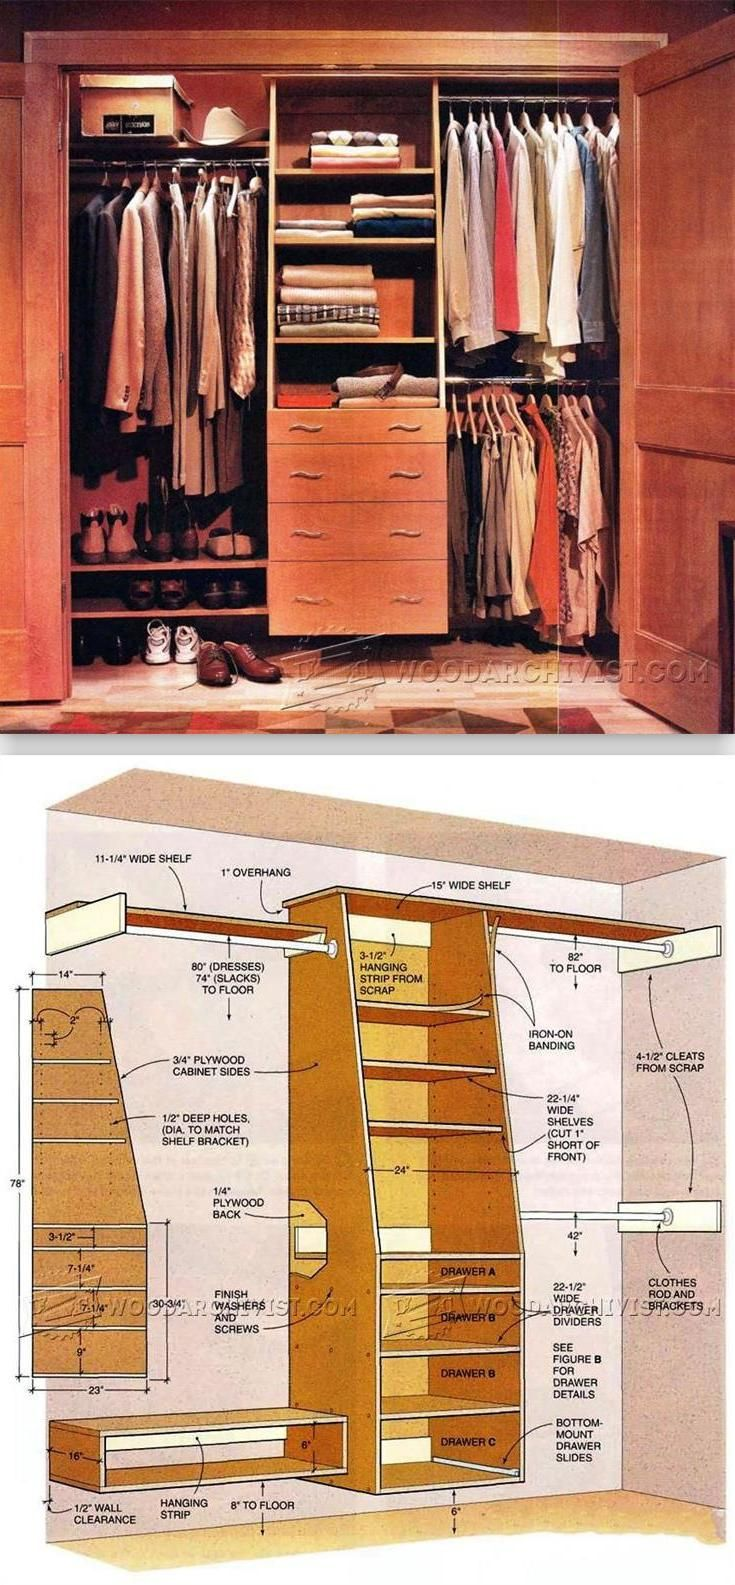 Built In Closet Plans   Furniture Plans And Projects | WoodArchivist.com